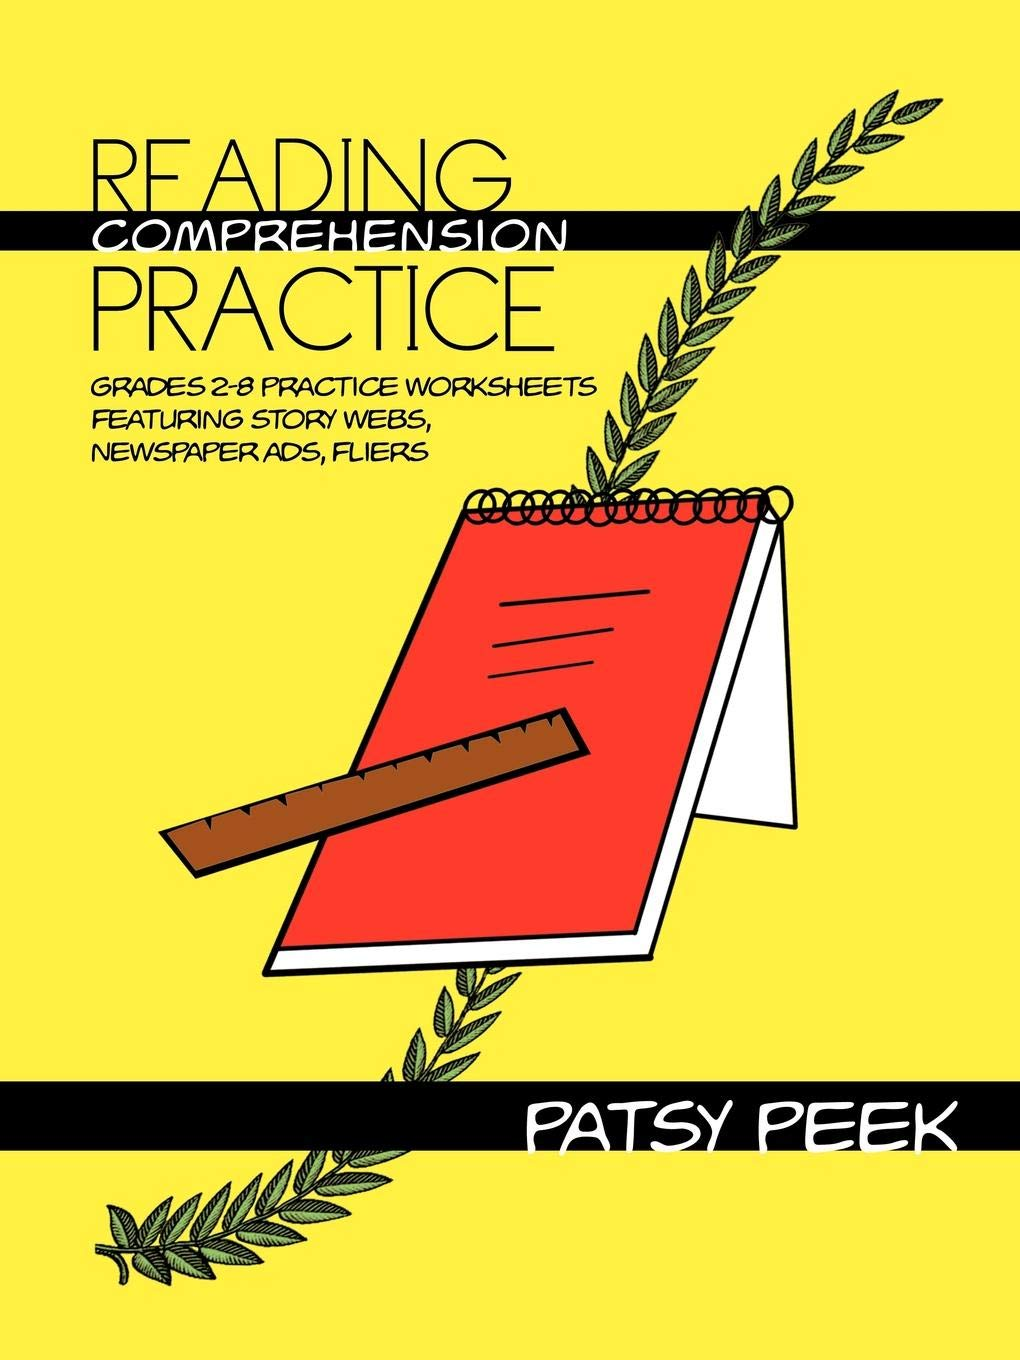 - Reading Comprehension Practice: Grades 2-8 Practice Worksheets